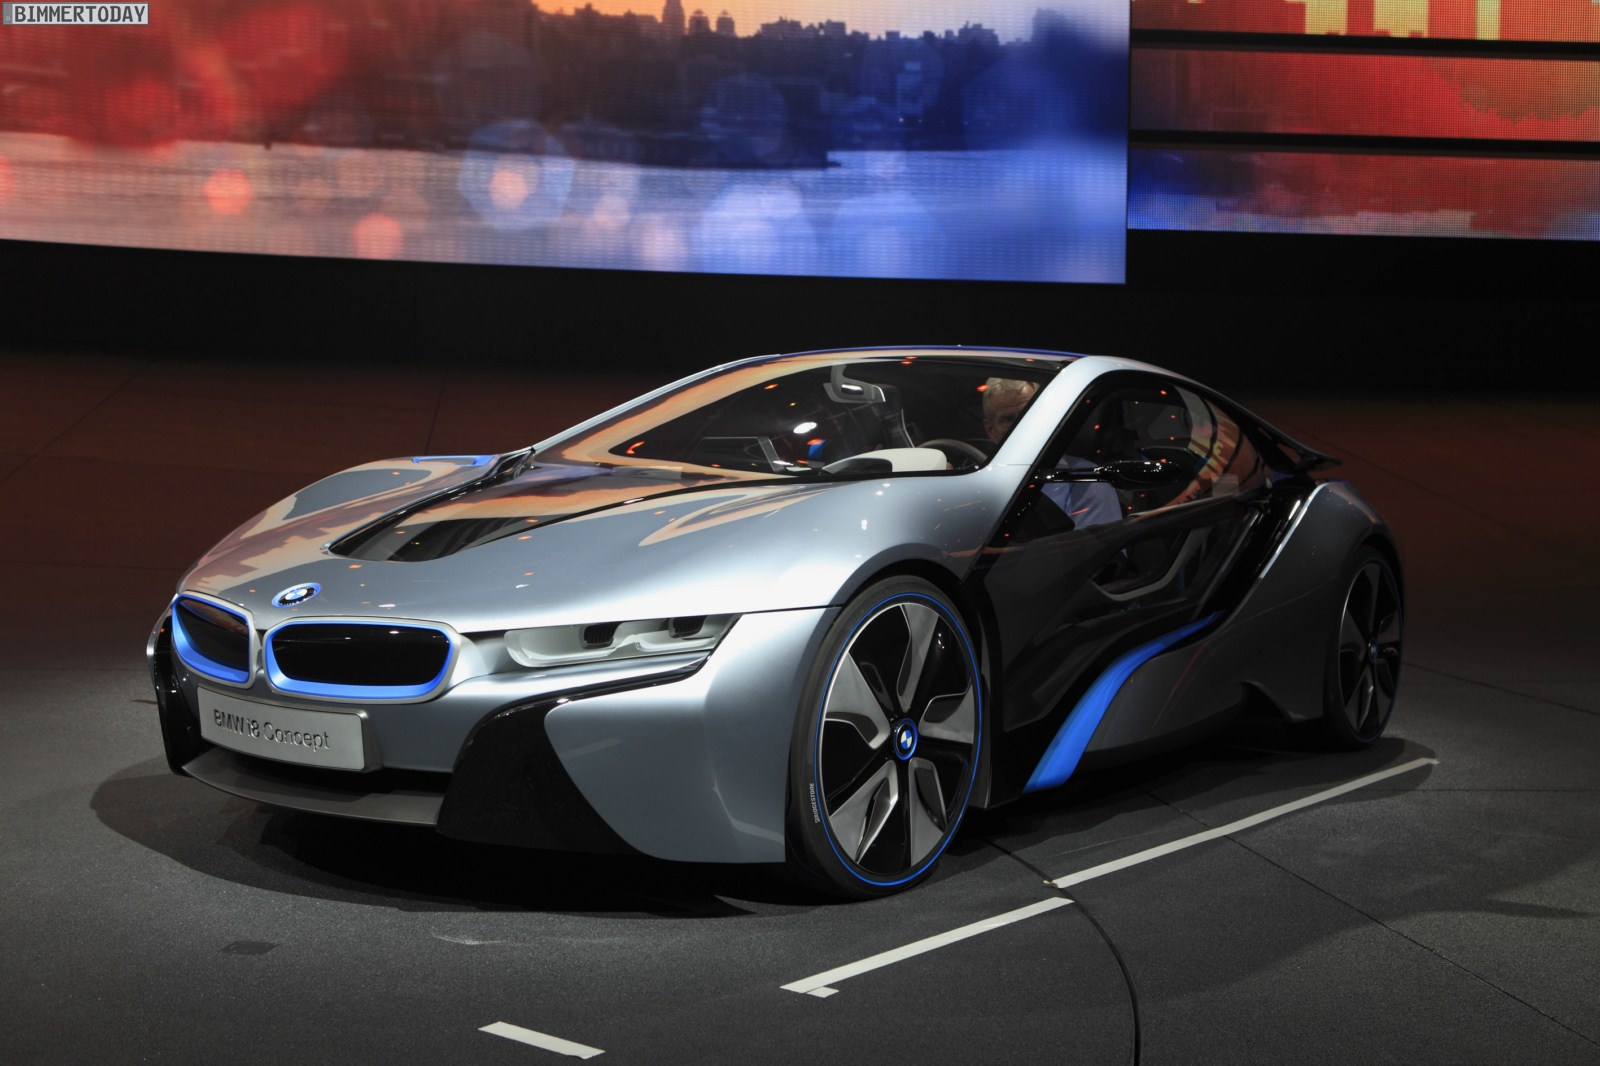 bmw i8 concept die offiziellen bilder zum hybrid. Black Bedroom Furniture Sets. Home Design Ideas